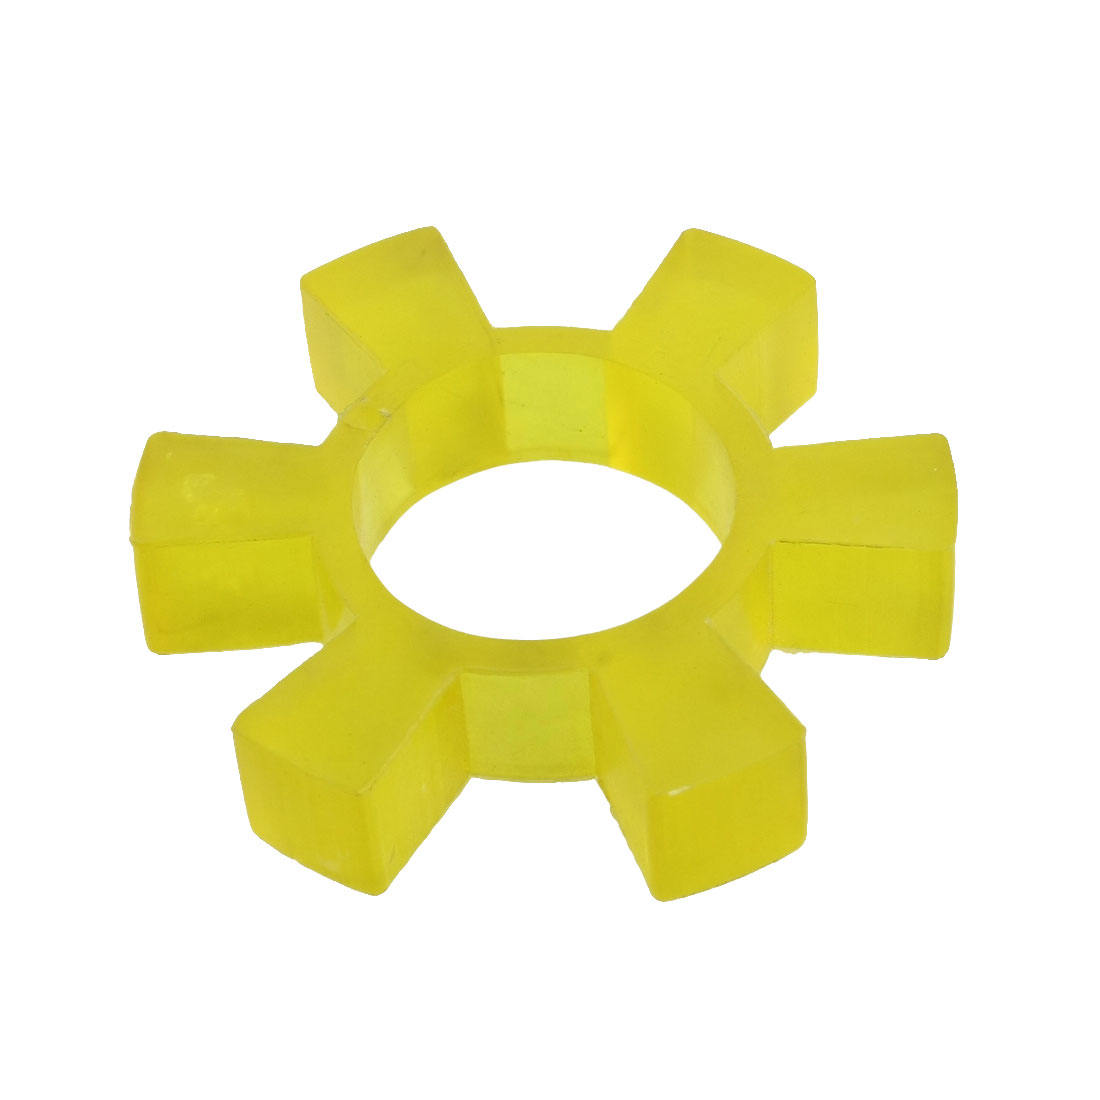 95mm x 17mm Flexible Yellow Polyurethan PU Coupler Dampler Buffer 42mm Bore